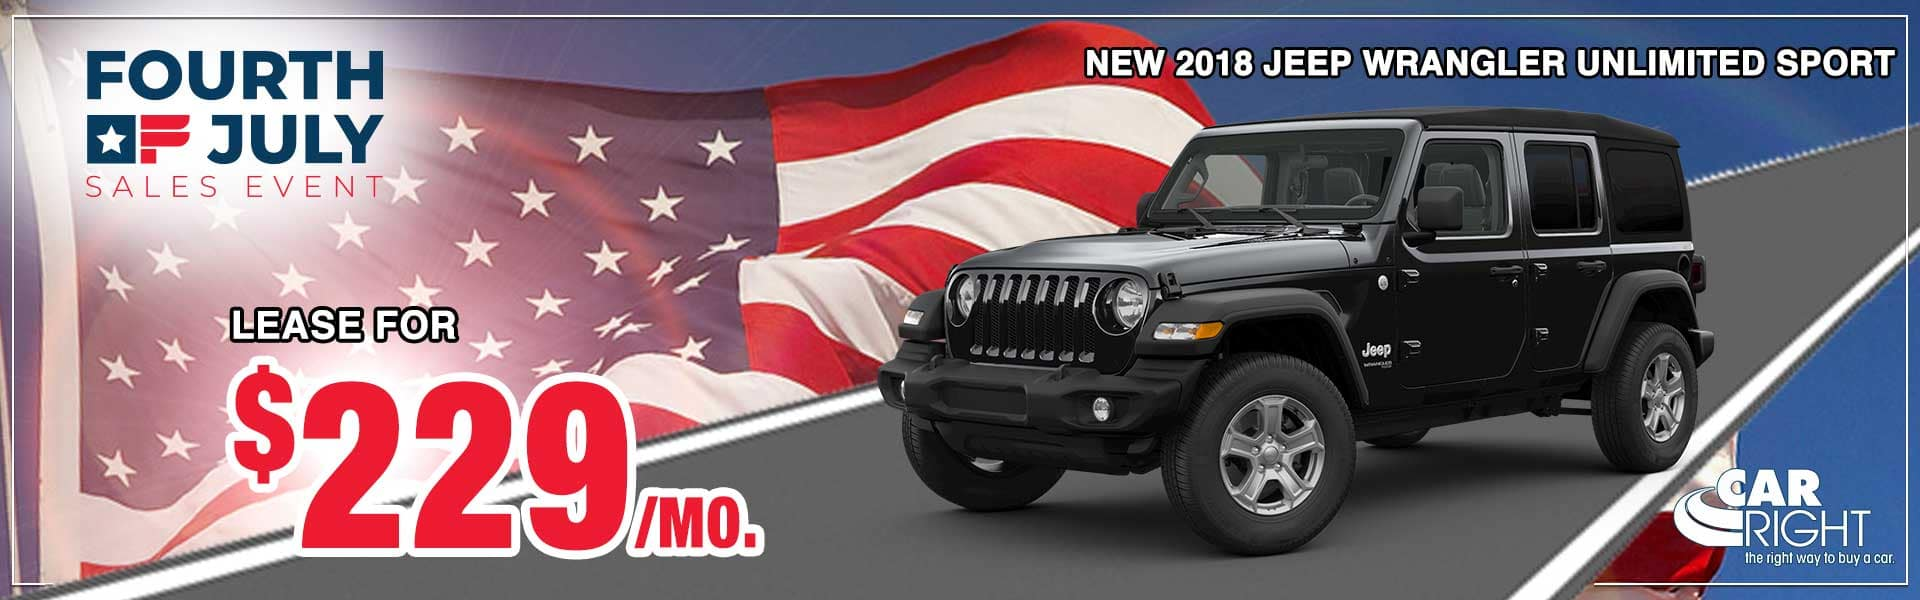 CarRight Chrysler Jeep Dodge Ram Fuso. Moon Township, PA. New, Used, parts, accessories, service. The right way to buy a car. 2018 Jeep Wrangler Unlimited Sport 4x4